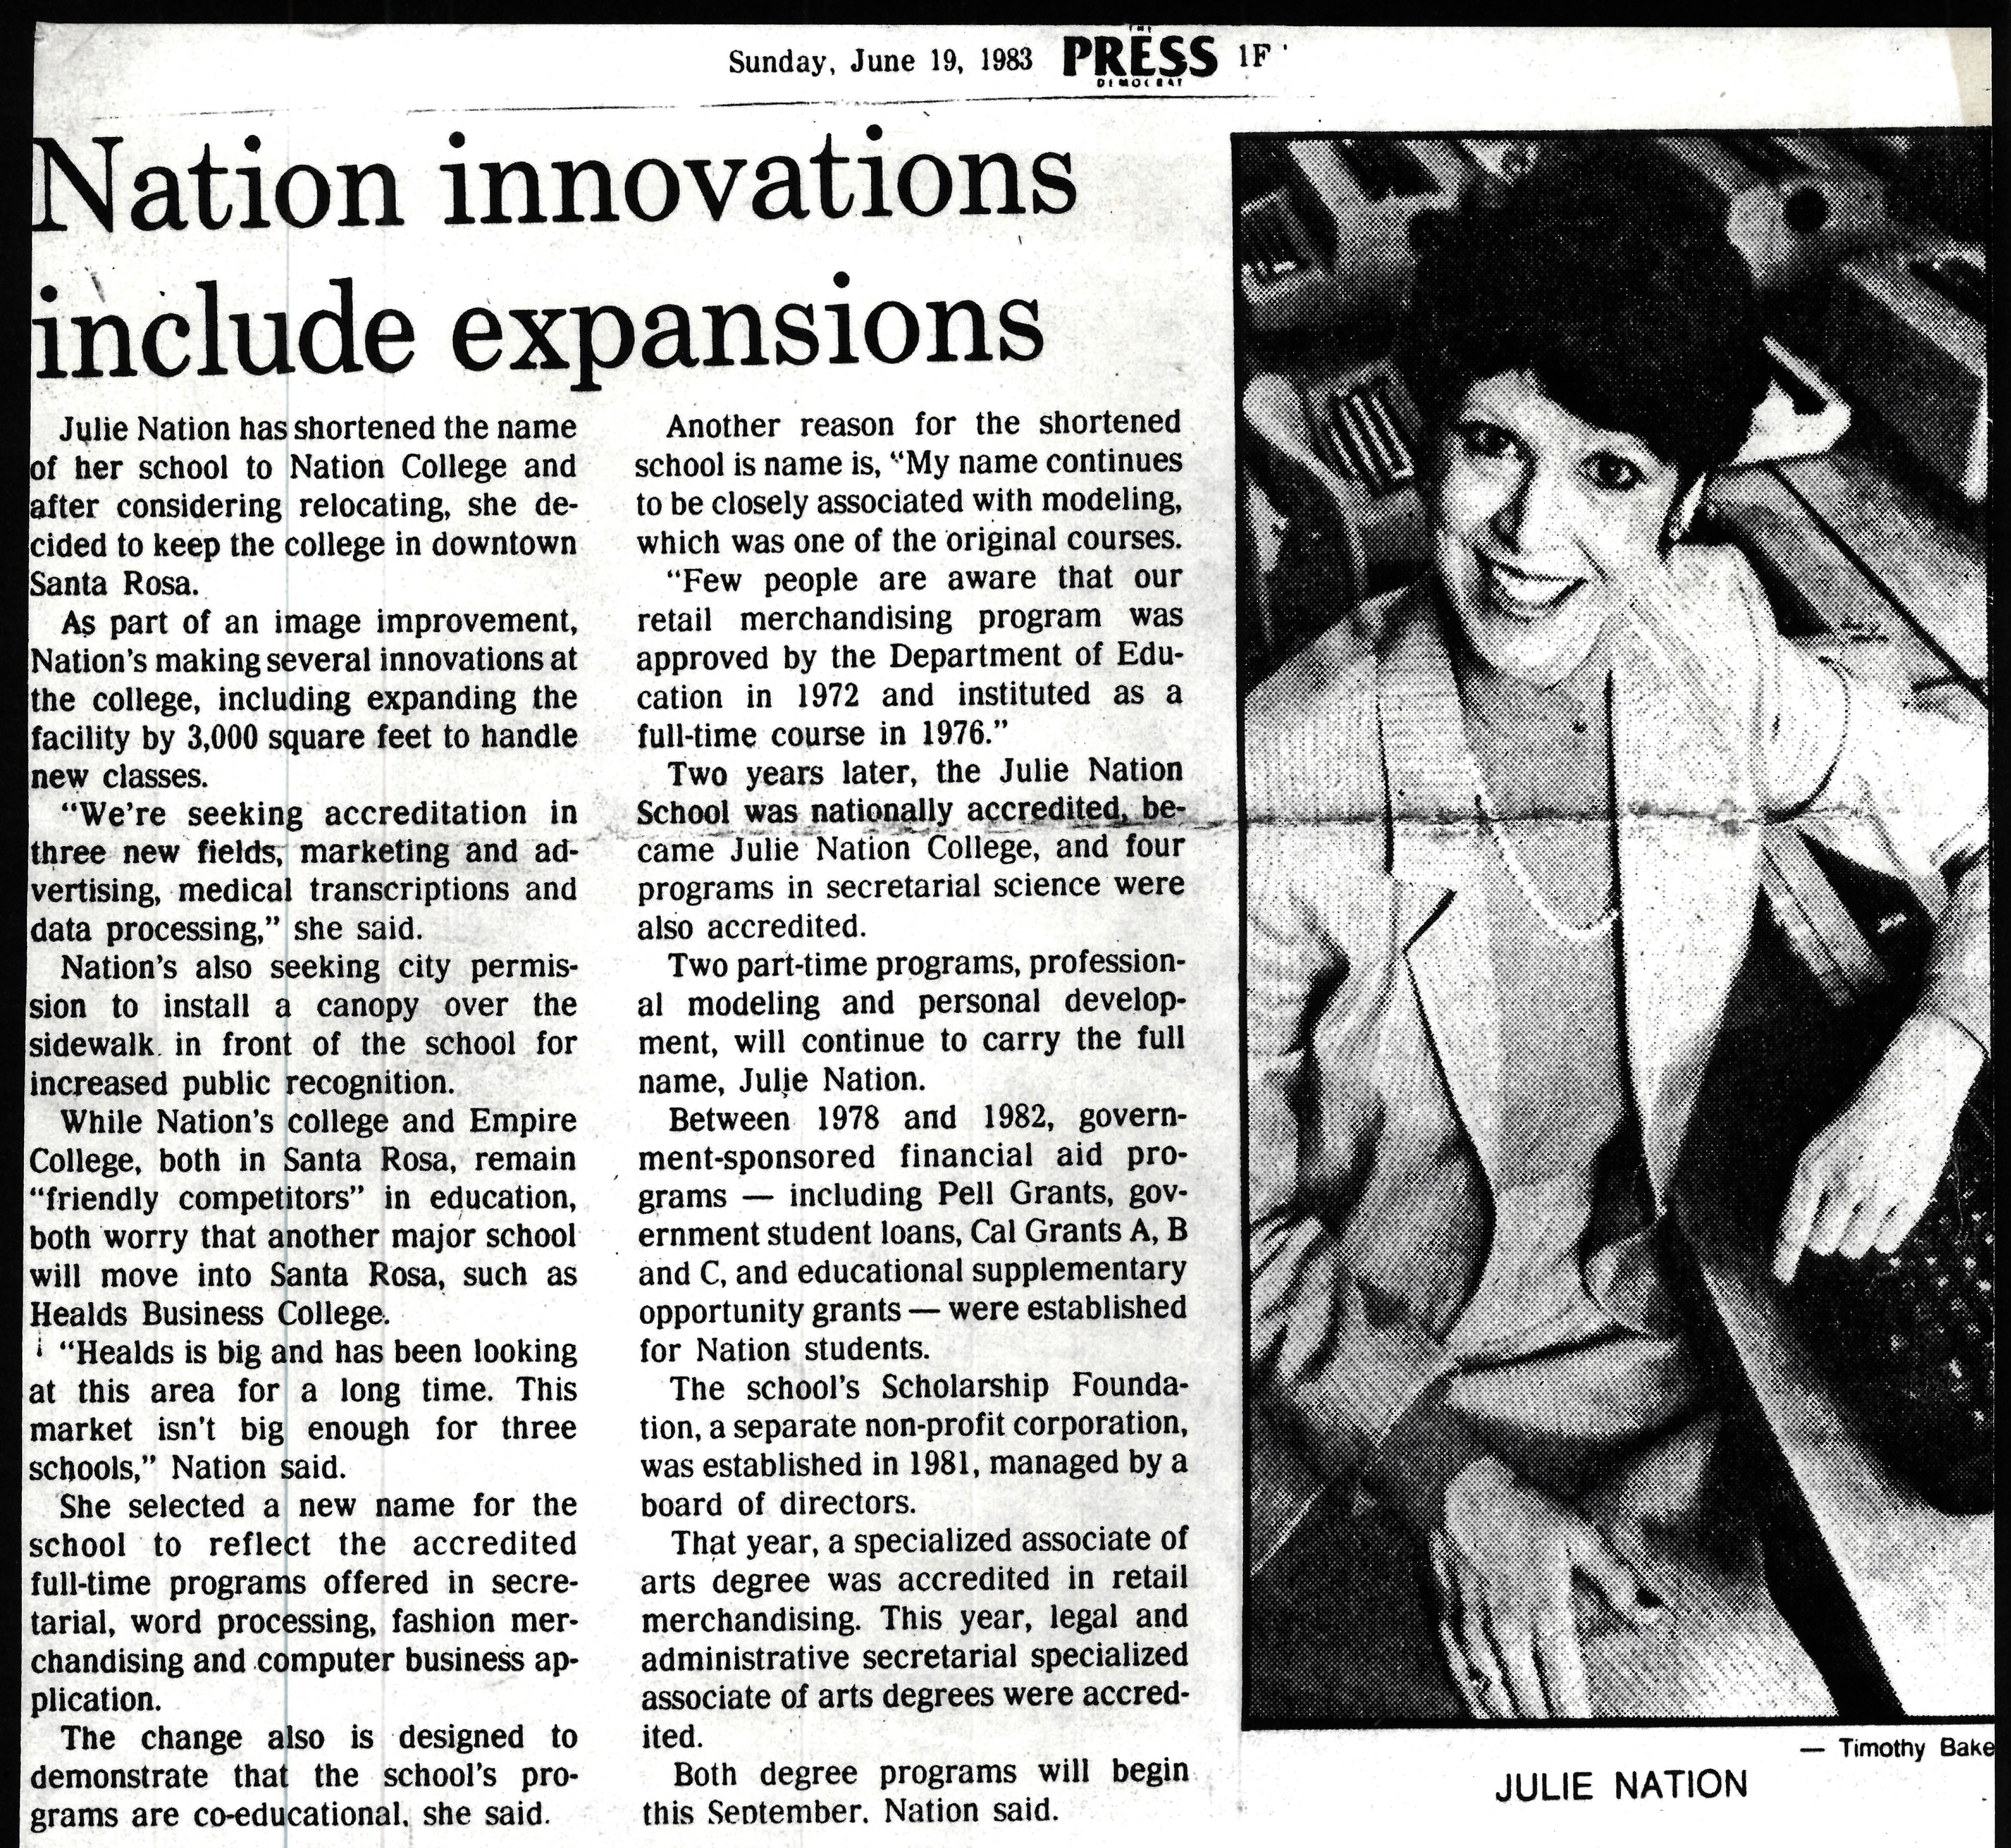 1983 Expansions